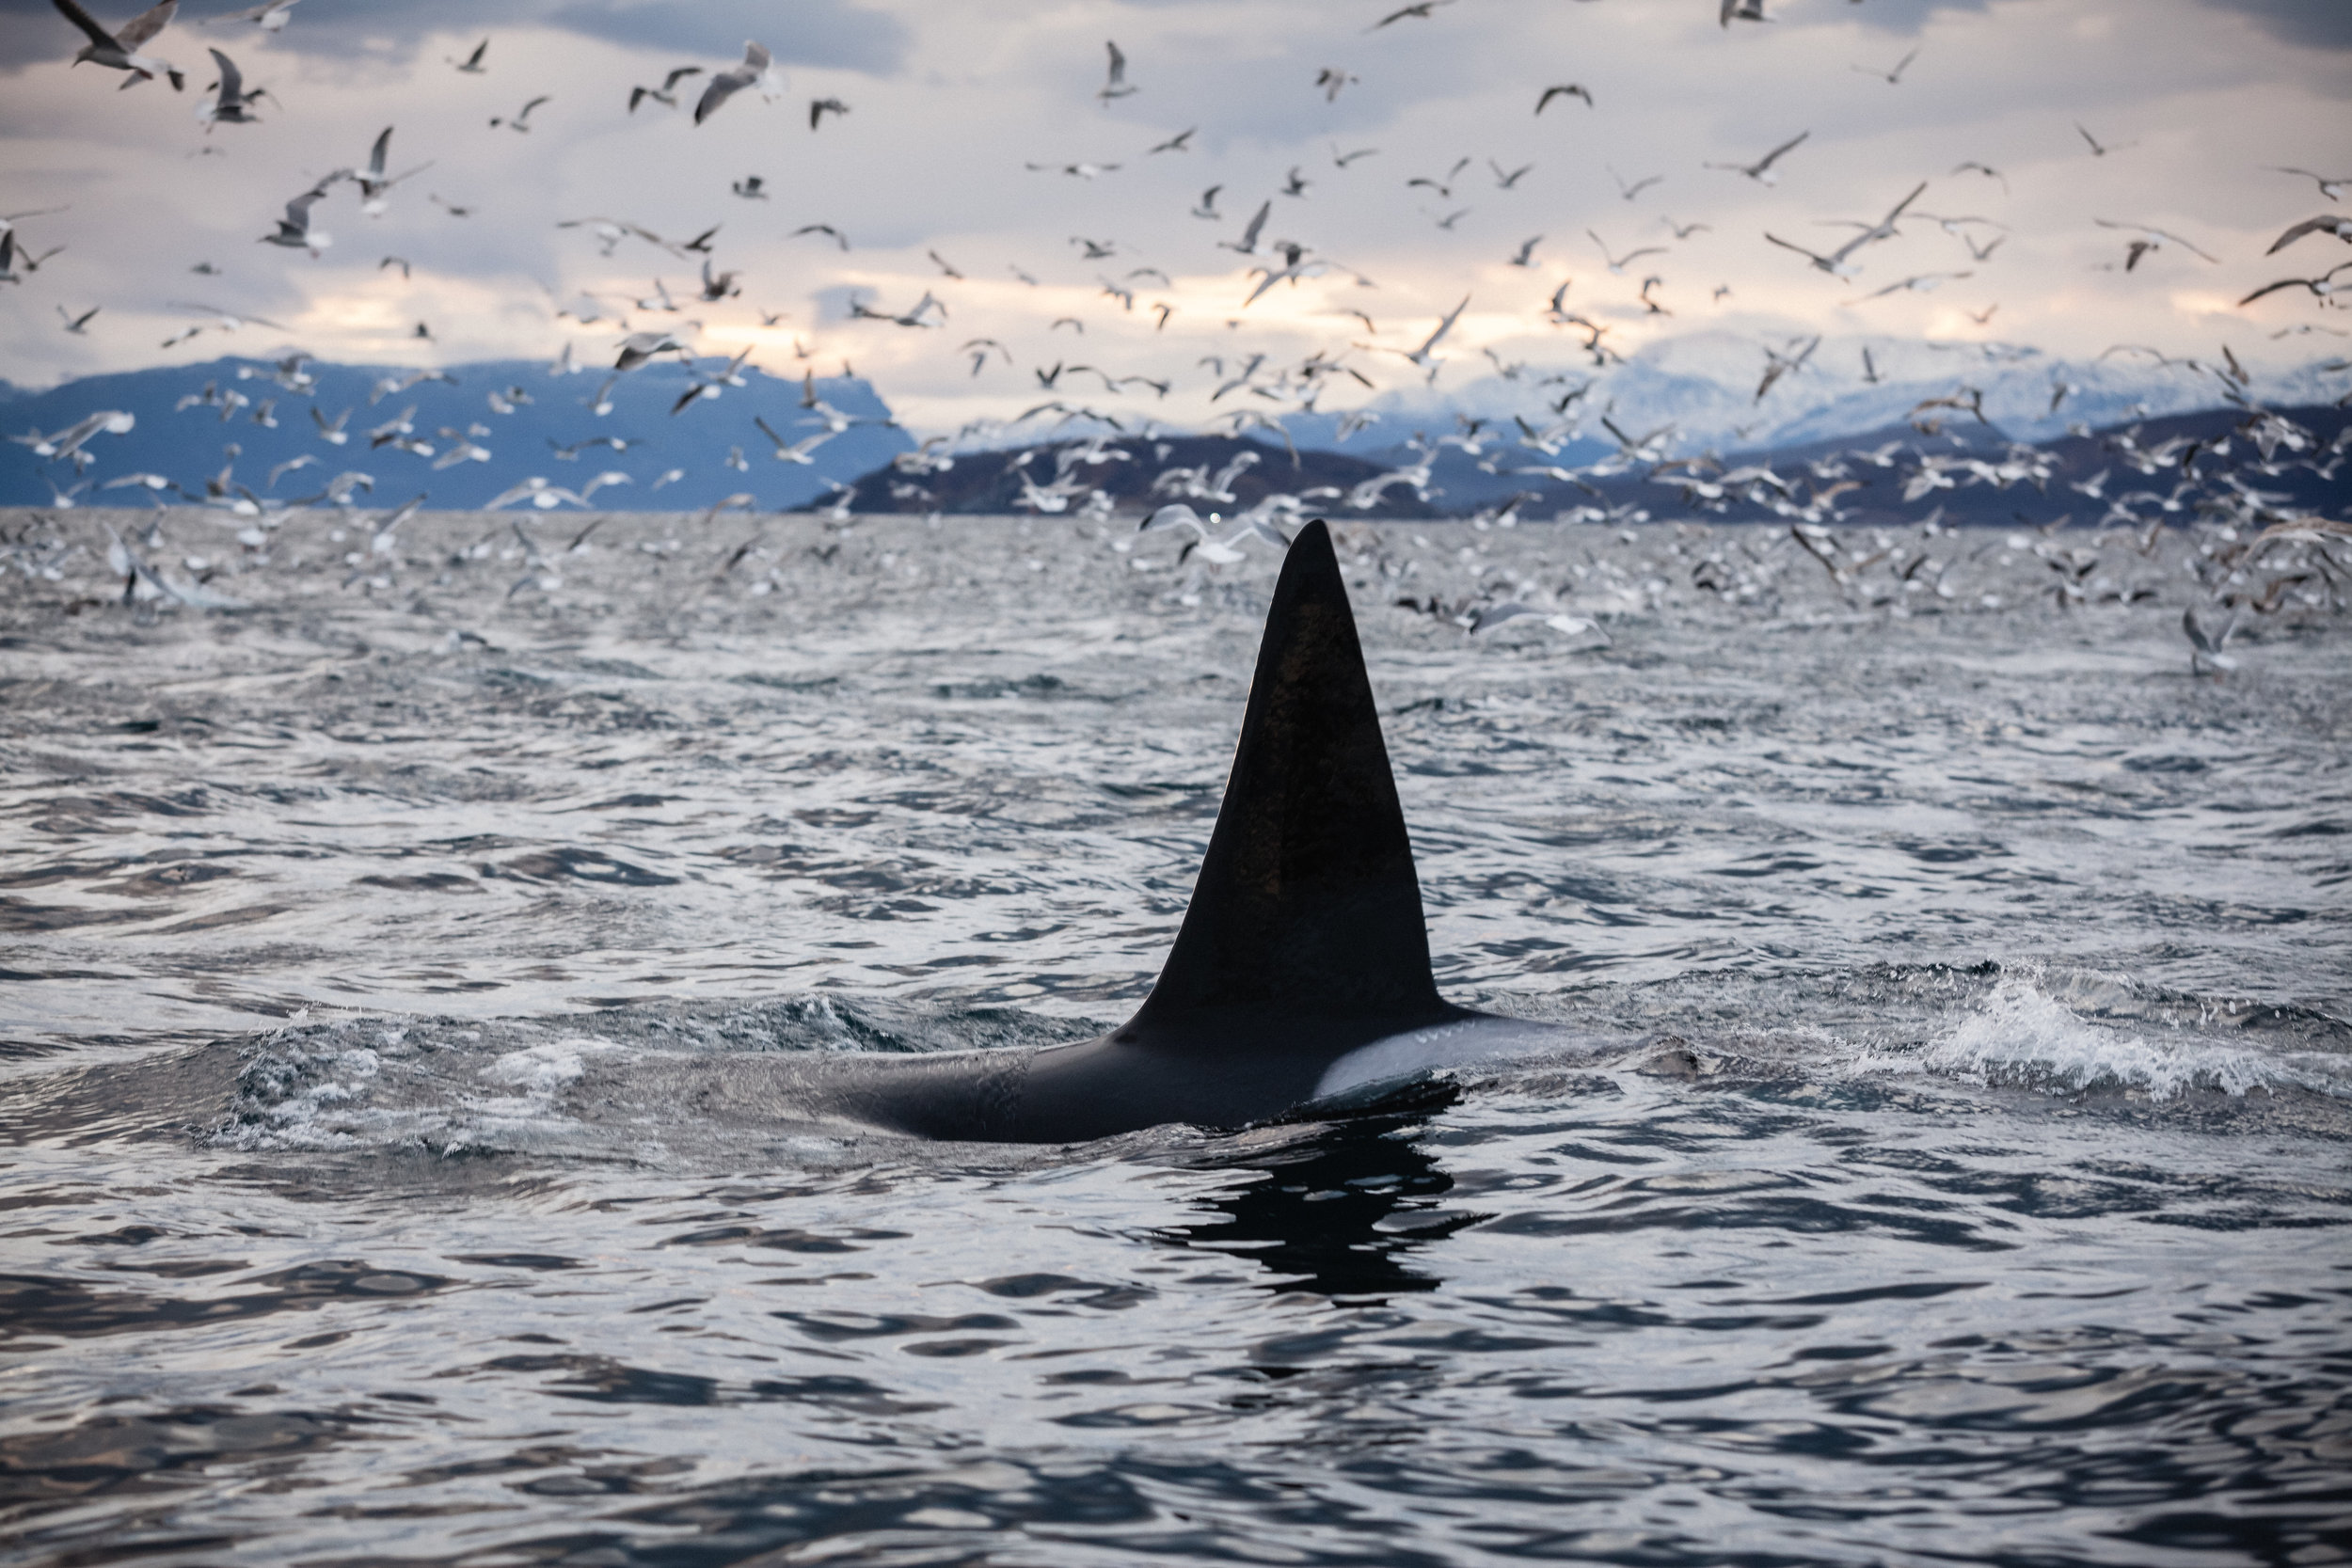 A male dorsal fin pokes out of the water amid the feeding frenzy.